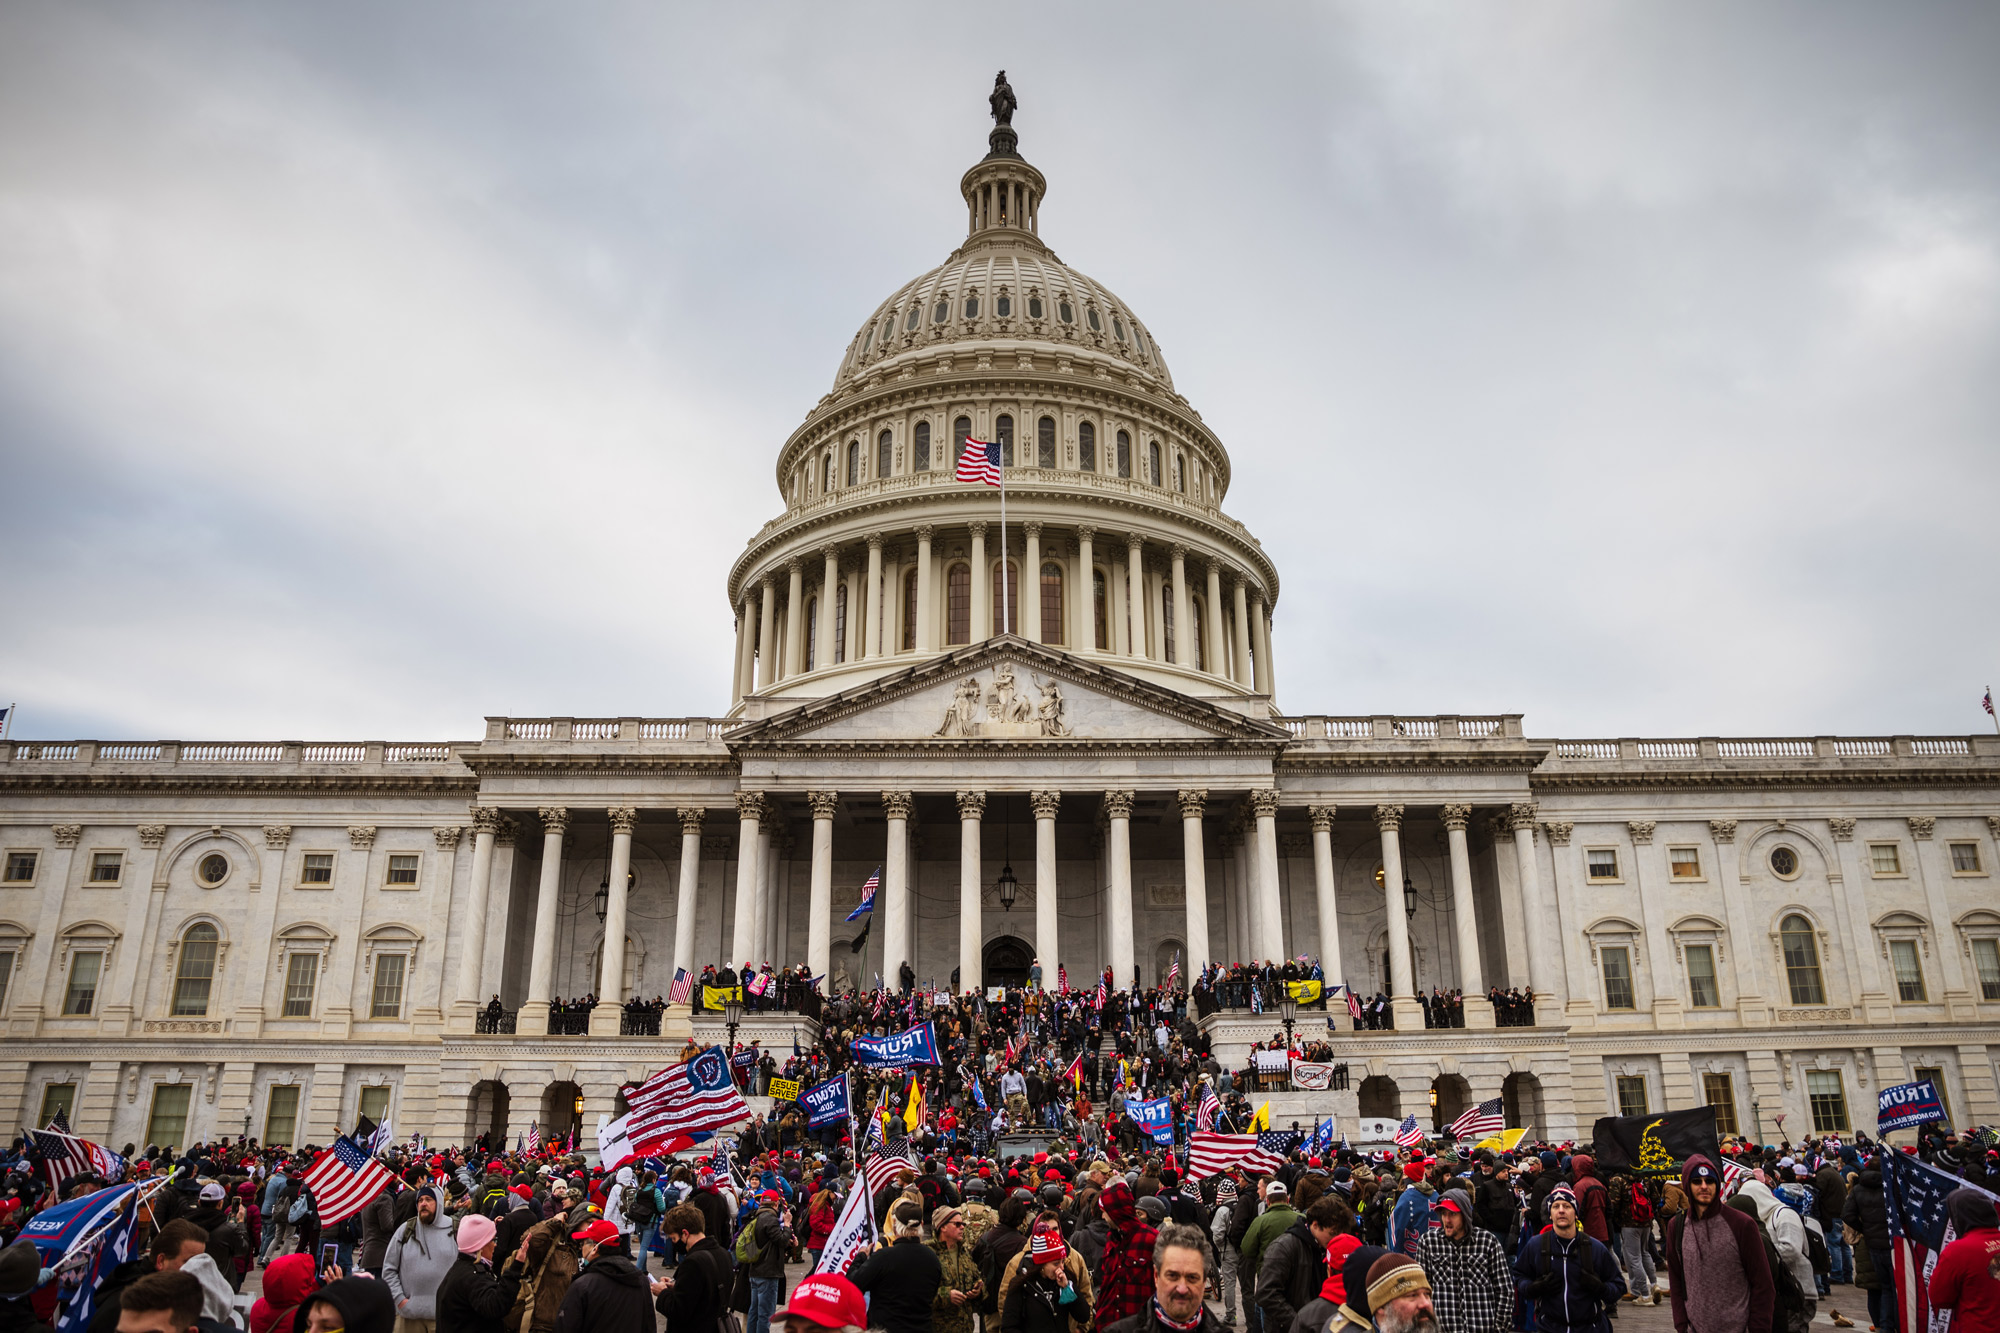 A large group of pro-Trump protesters stand on the East steps of the Capitol Building after storming its grounds on January 6 in Washington, DC.